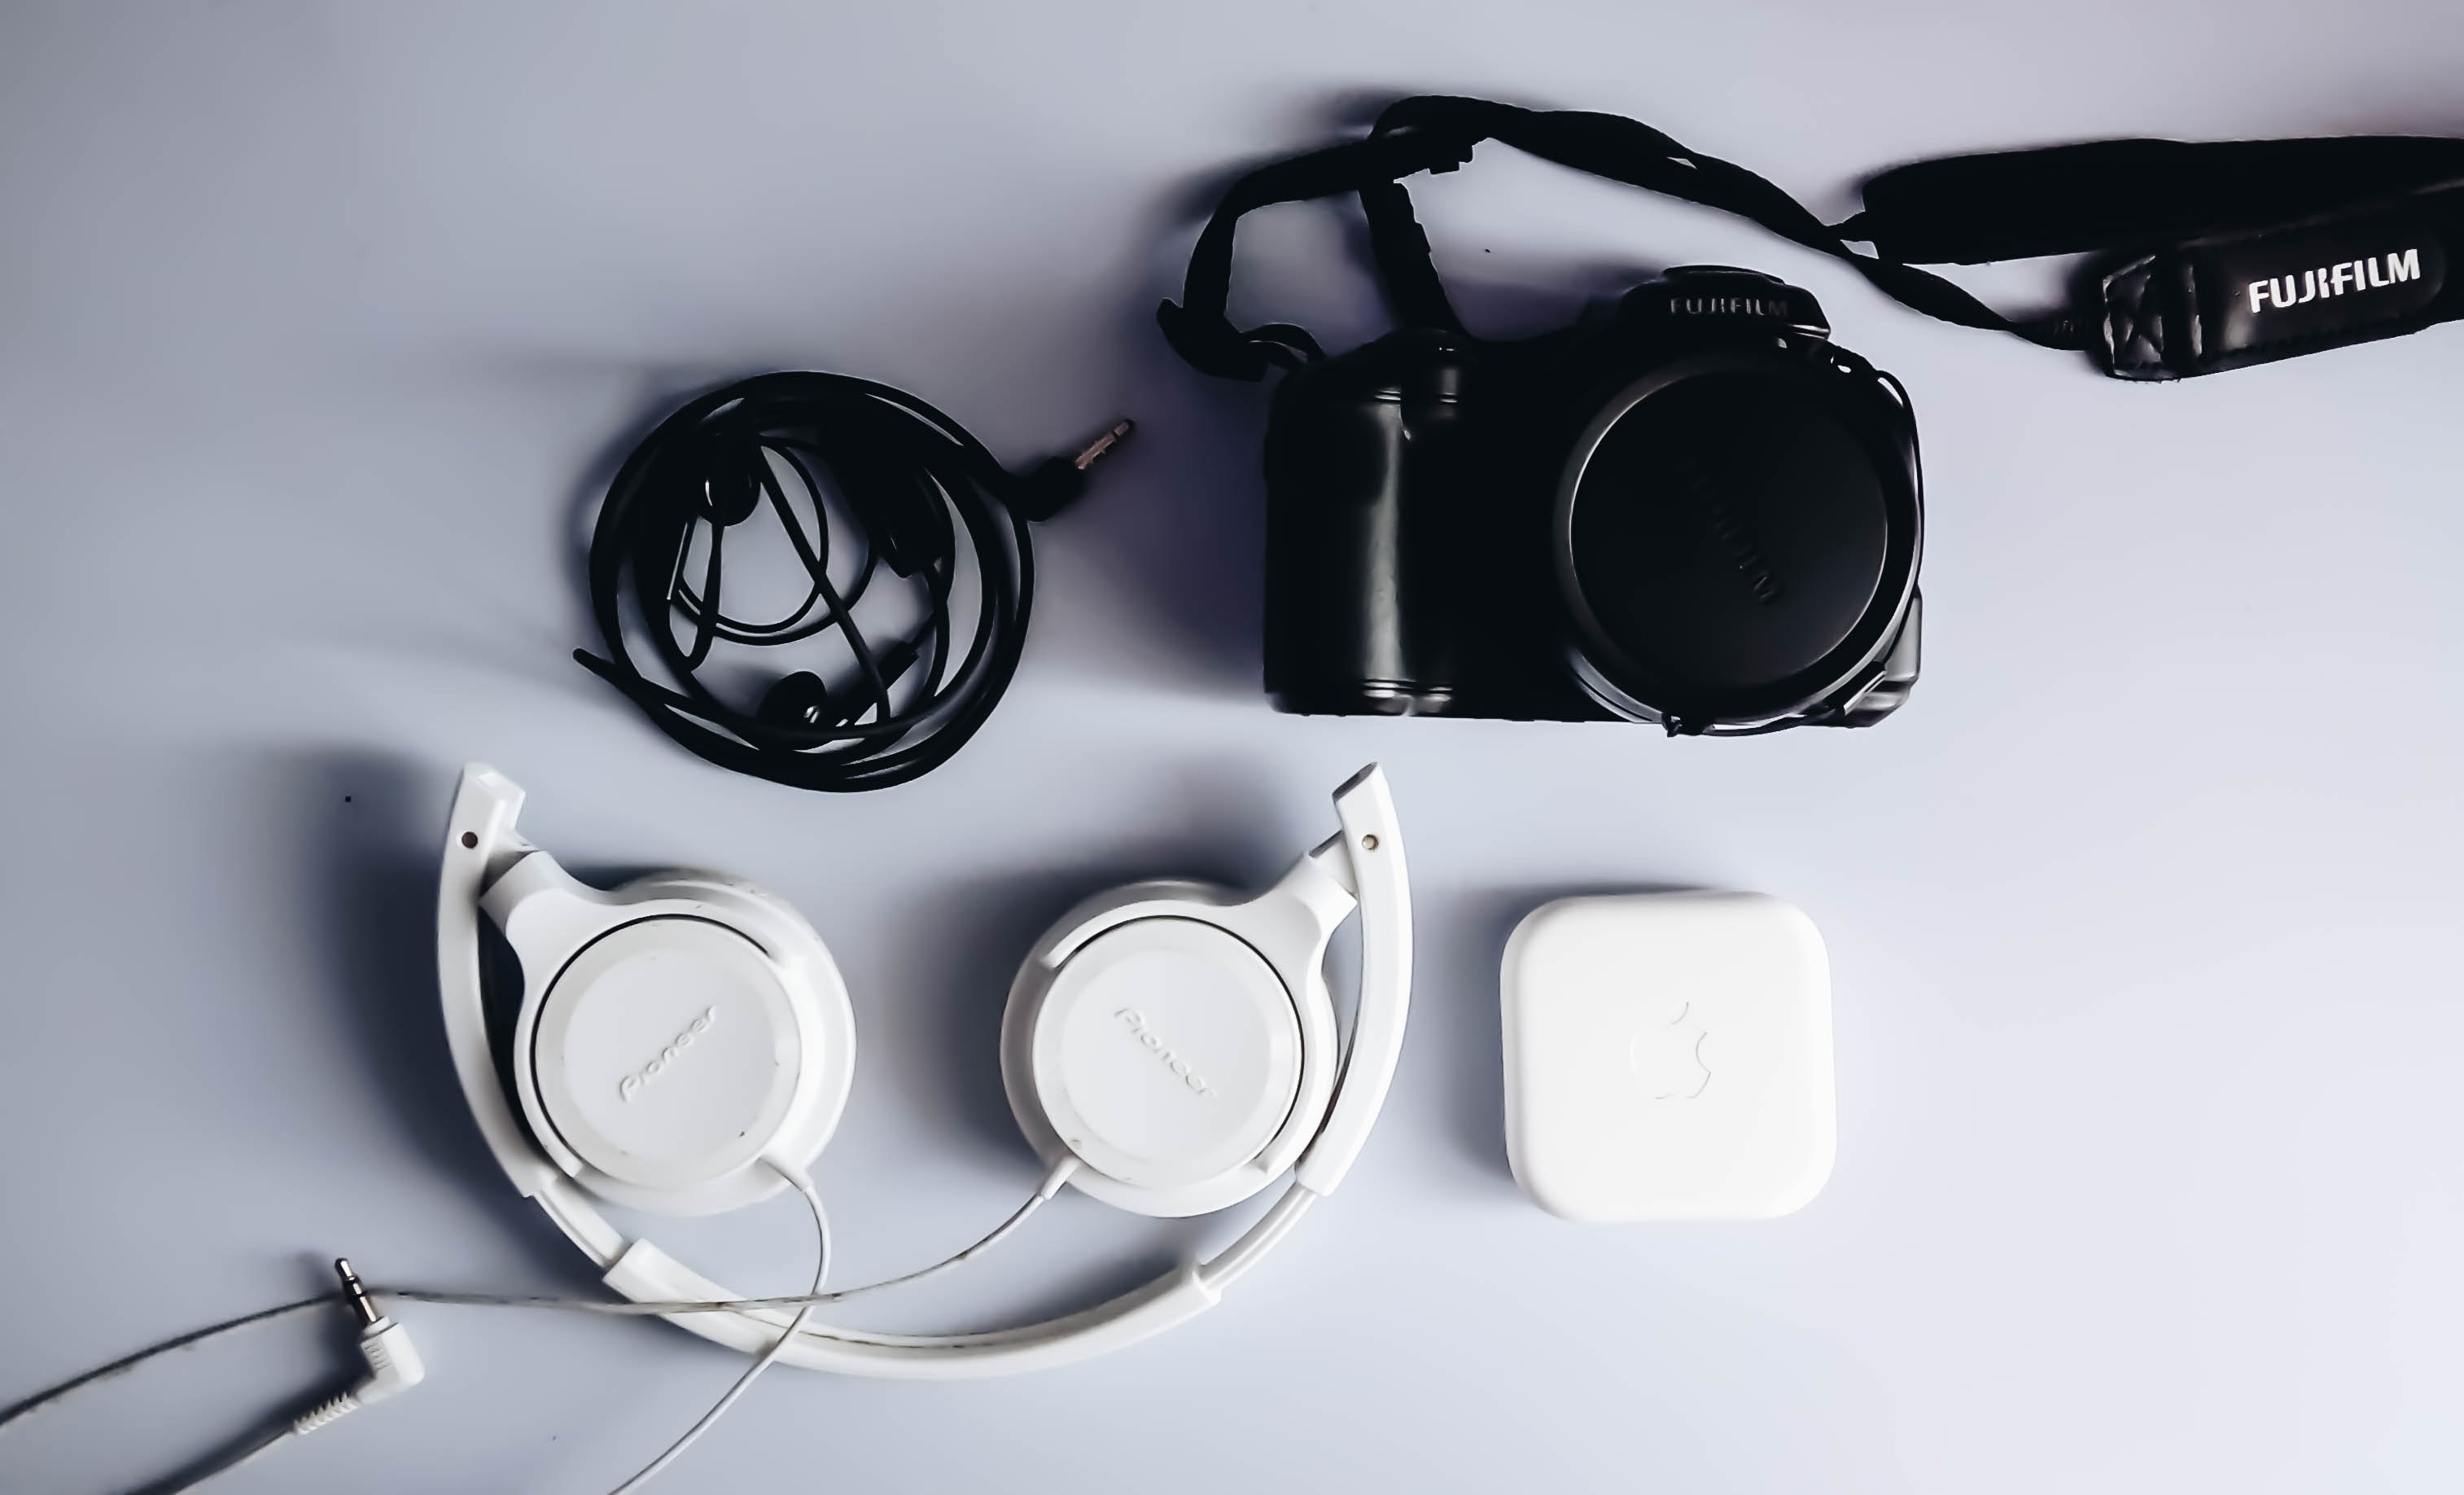 black Fujifilm DSLR camera and white corded headphones